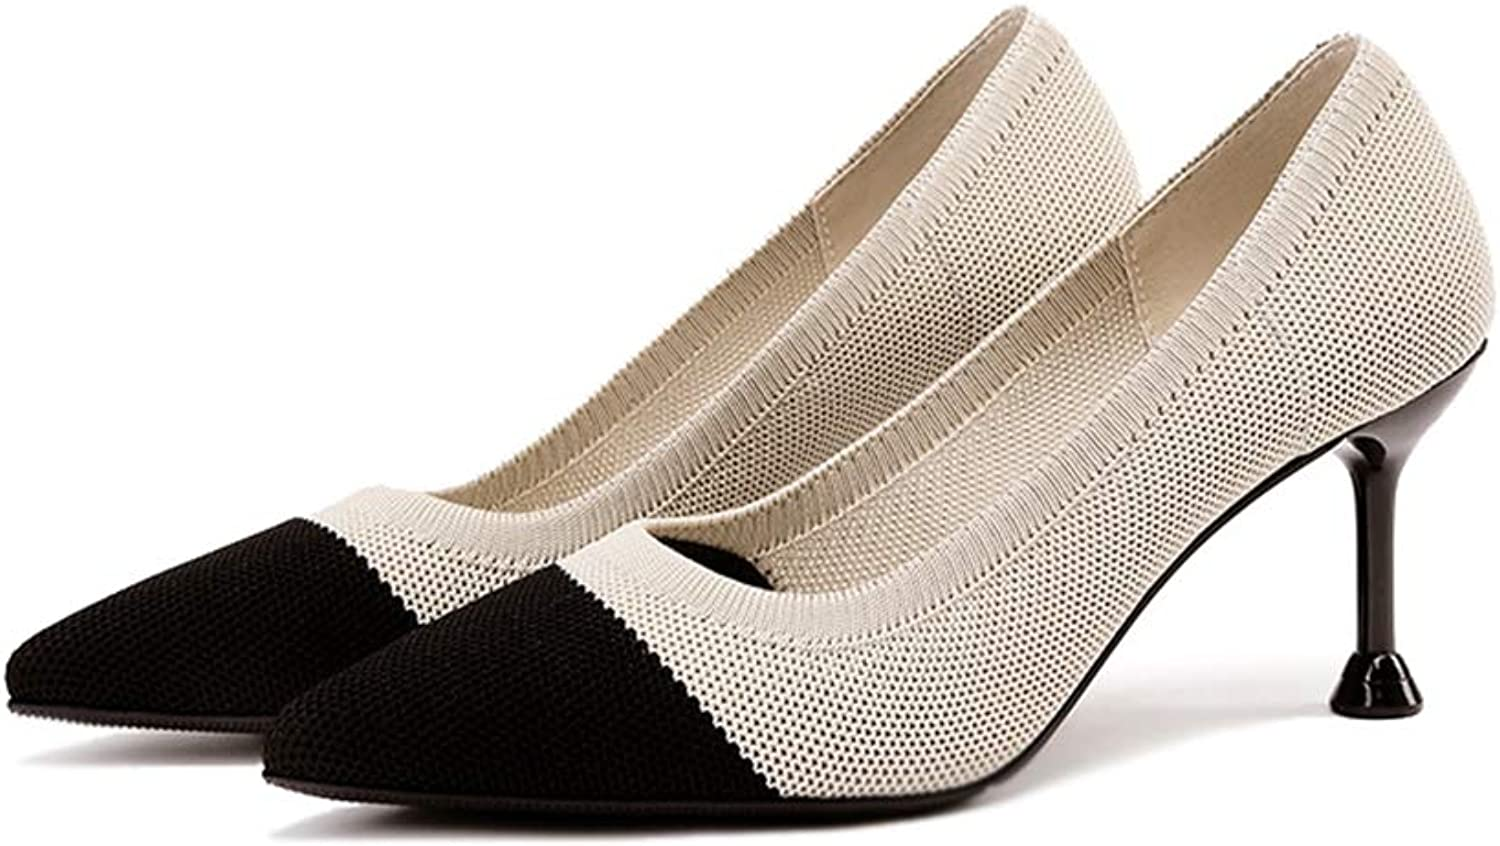 Sam Carle Women's Pumps, Stylish Knitted Anti-Slip Kitten Heel Black Apricot Formal shoes